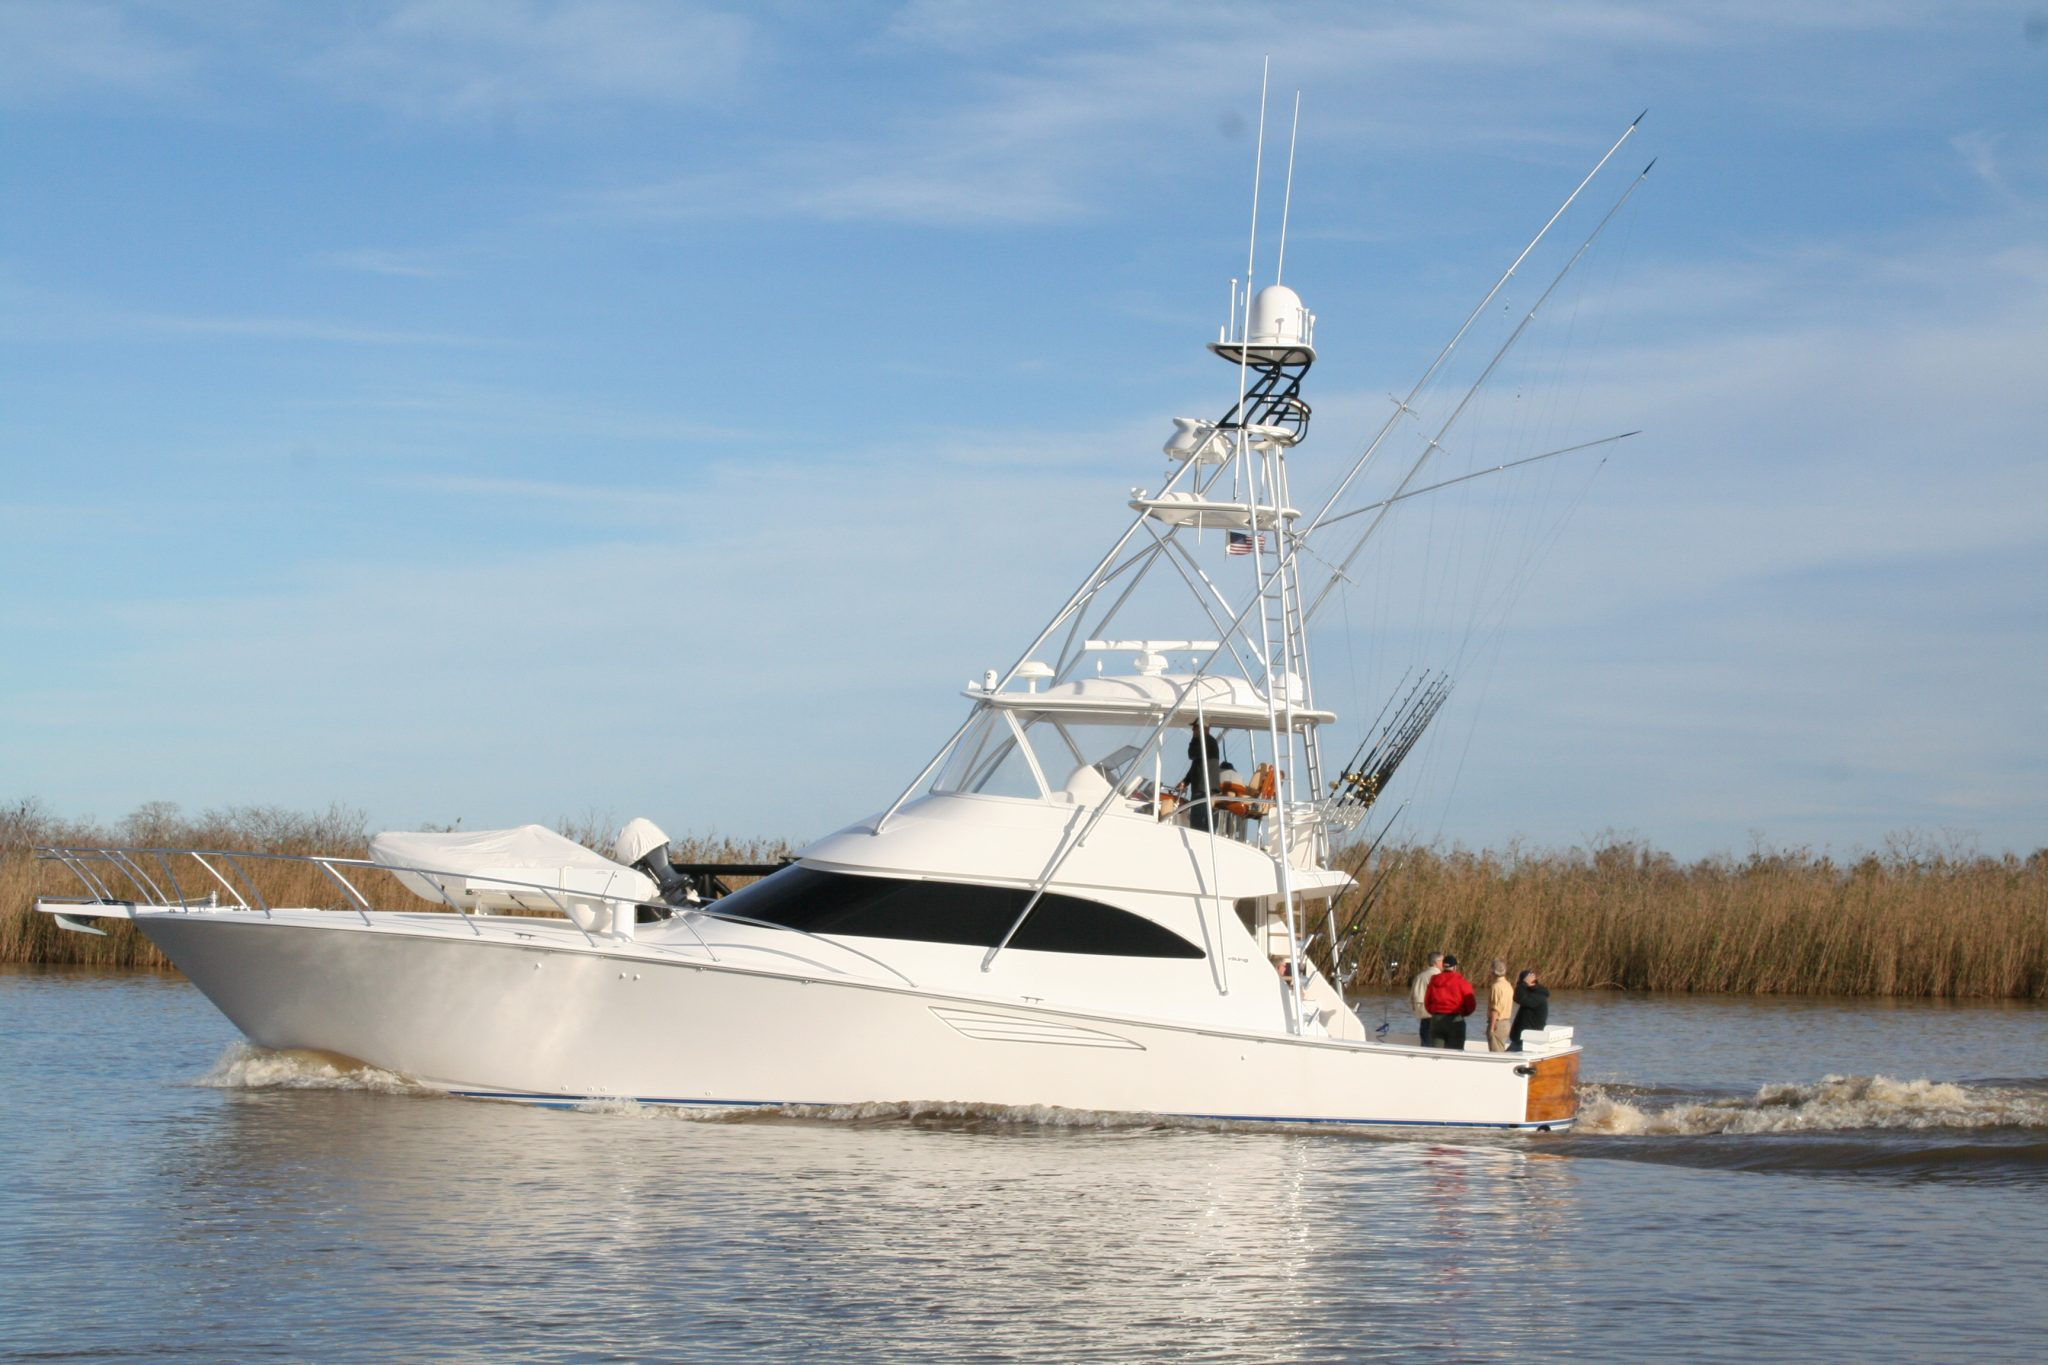 The Quiteña was originally outfitted for sport fishing in the Gulf of Mexico. However, the new owner and San Diego resident, Paul Fruchbom, wished to modify the boat to accommodate fishing in the Pacific Ocean, while retaining the 2014 Viking construction standard.